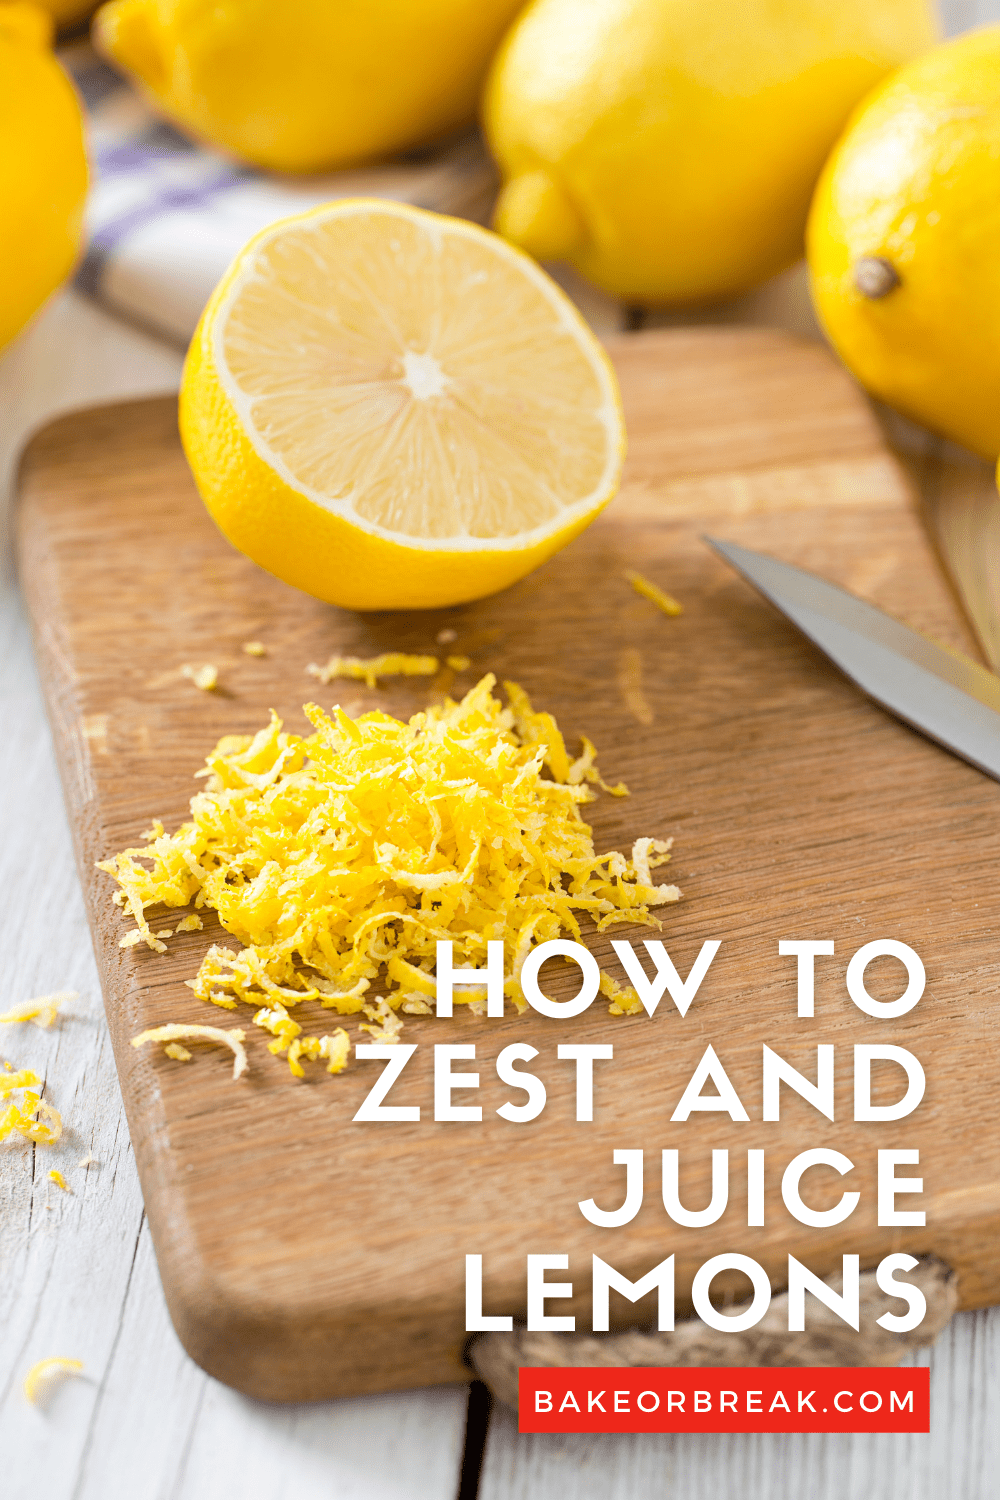 How to Zest and Juice Lemons bakeorbreak.com